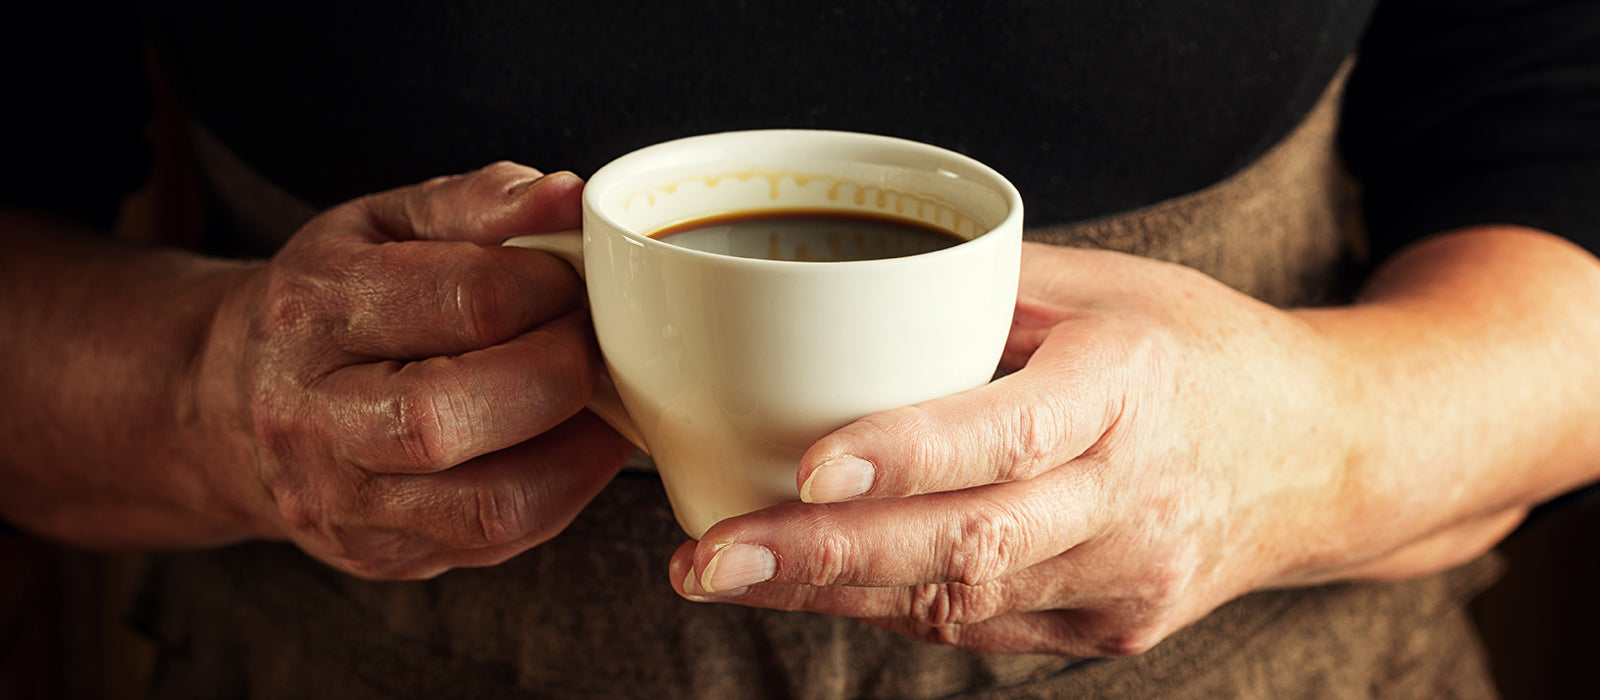 How does coffee affect blood pressure?